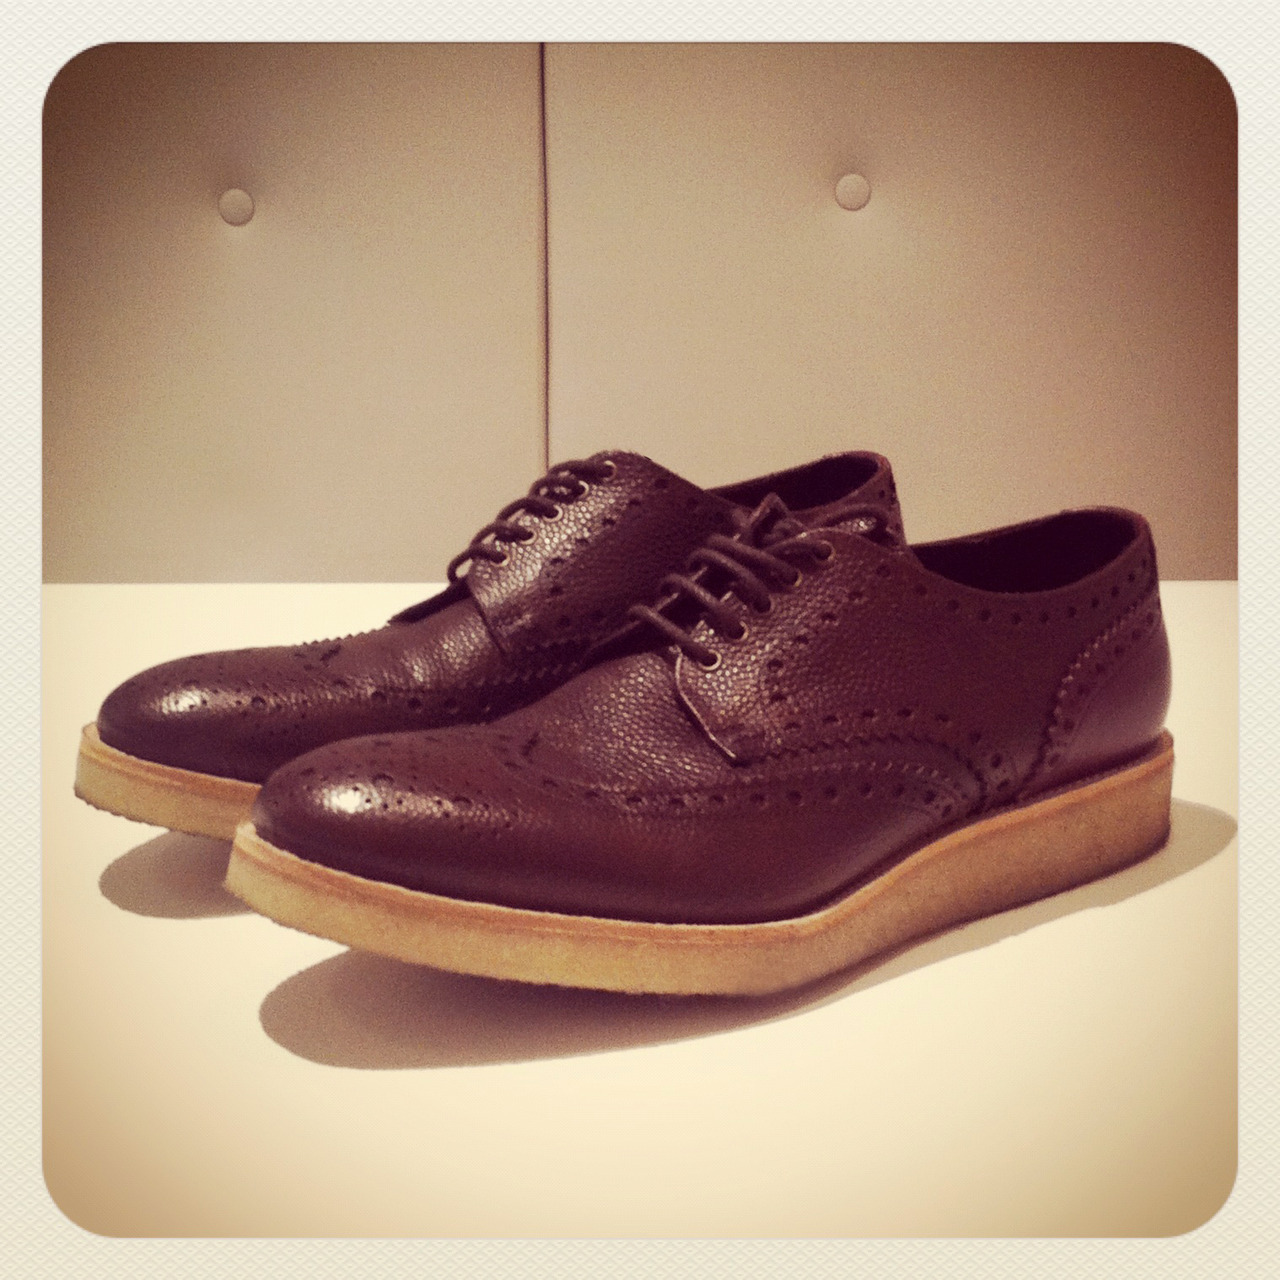 Perfect for winter, we're coveting Paul Smith's crepe-sole brogues. SHOP at: http://bit.ly/TguKHv